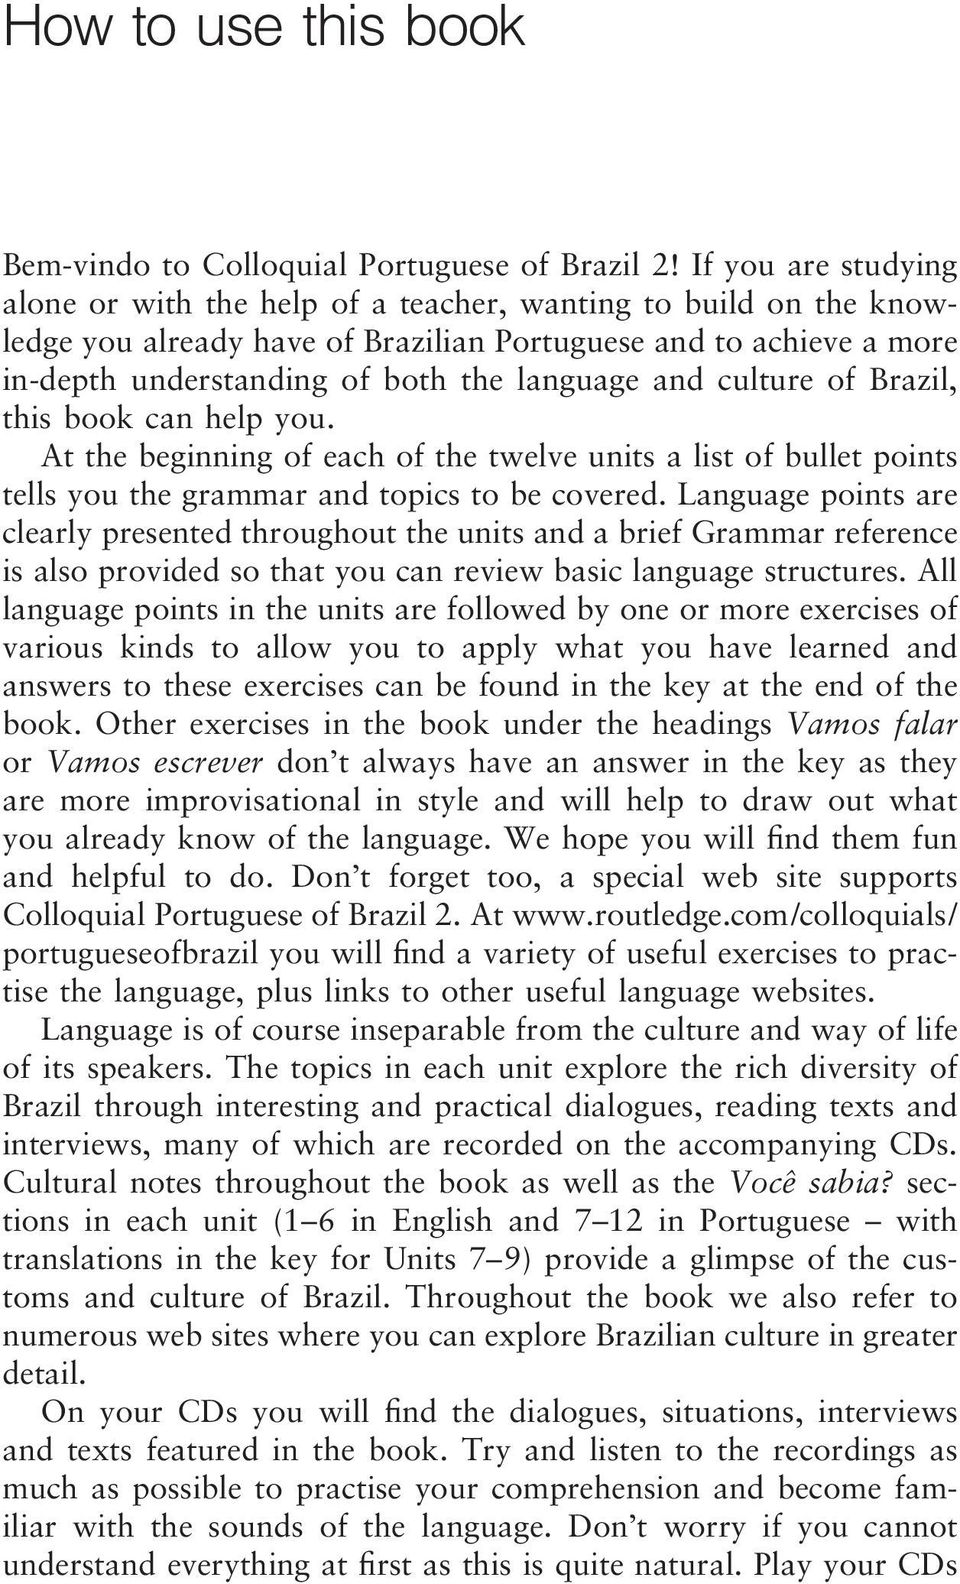 and culture of Brazil, this book can help you. At the beginning of each of the twelve units a list of bullet points tells you the grammar and topics to be covered.